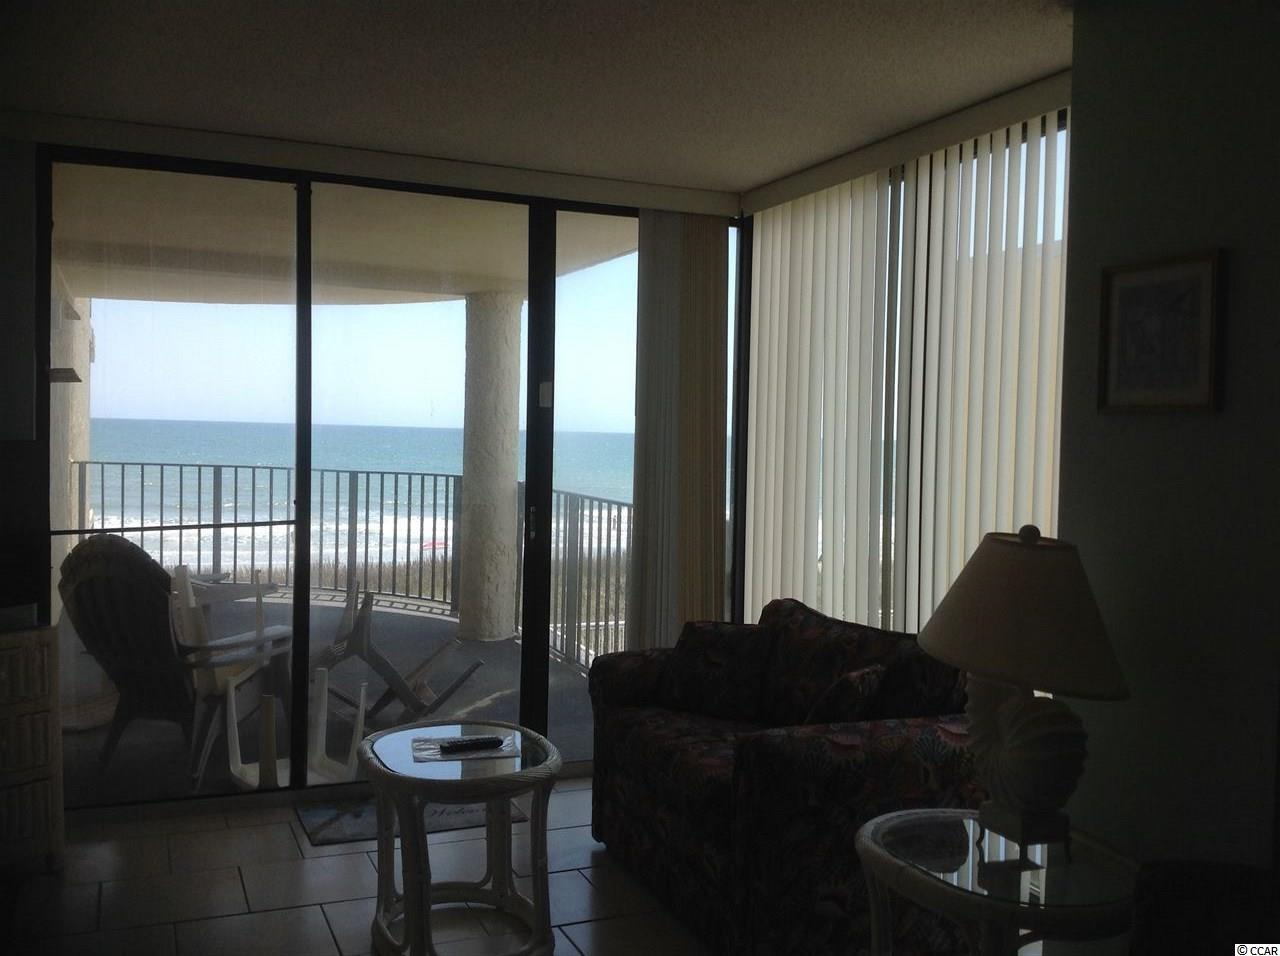 Sea Castle condo for sale in North Myrtle Beach, SC